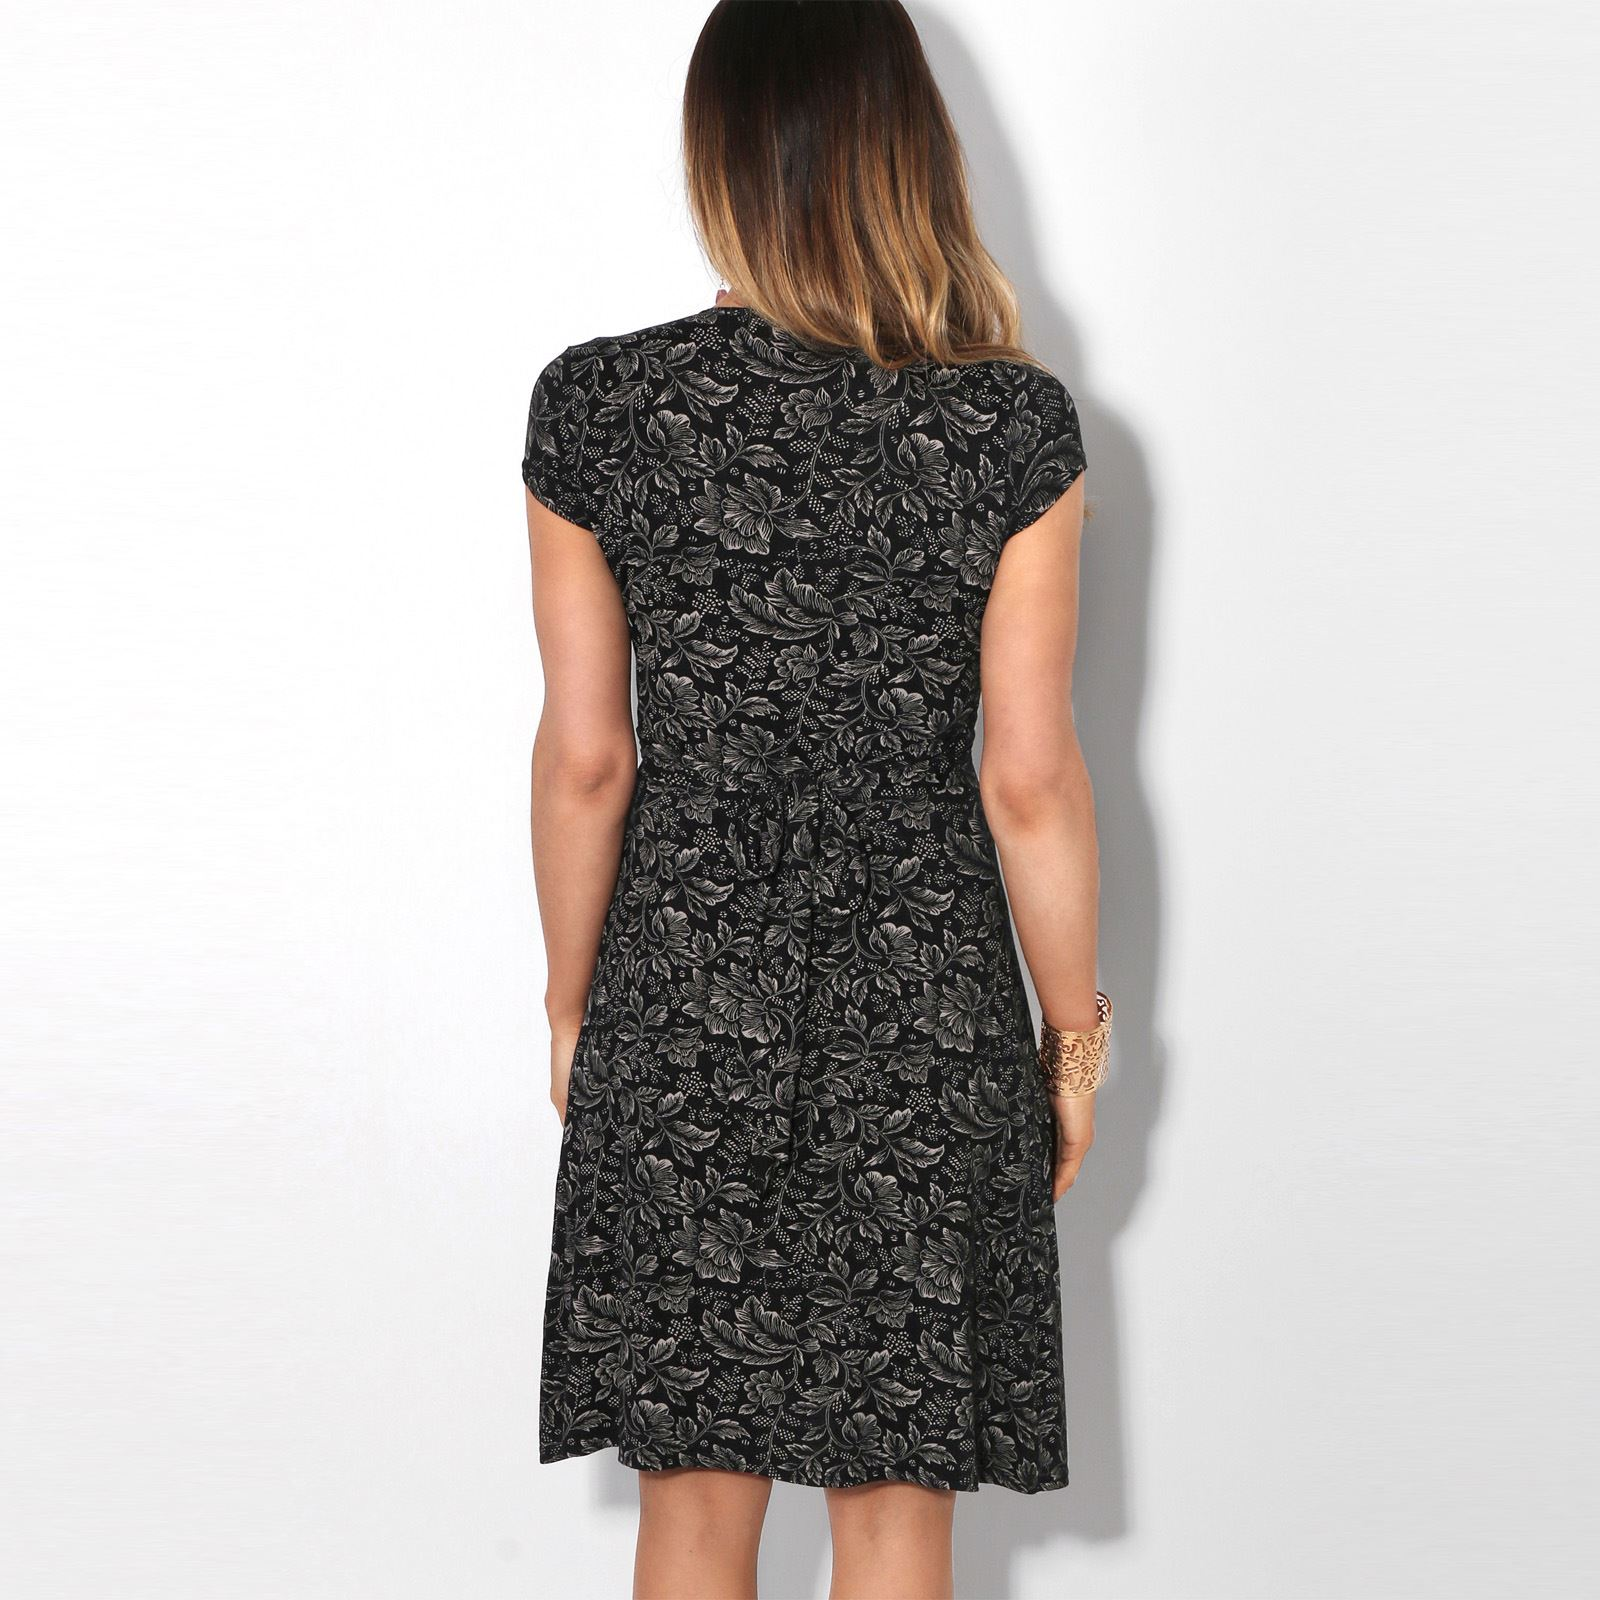 Womens-Ladies-V-Neck-Mini-Midi-Dress-Floral-Print-Knot-Short-Skirt-Party-Casual thumbnail 9